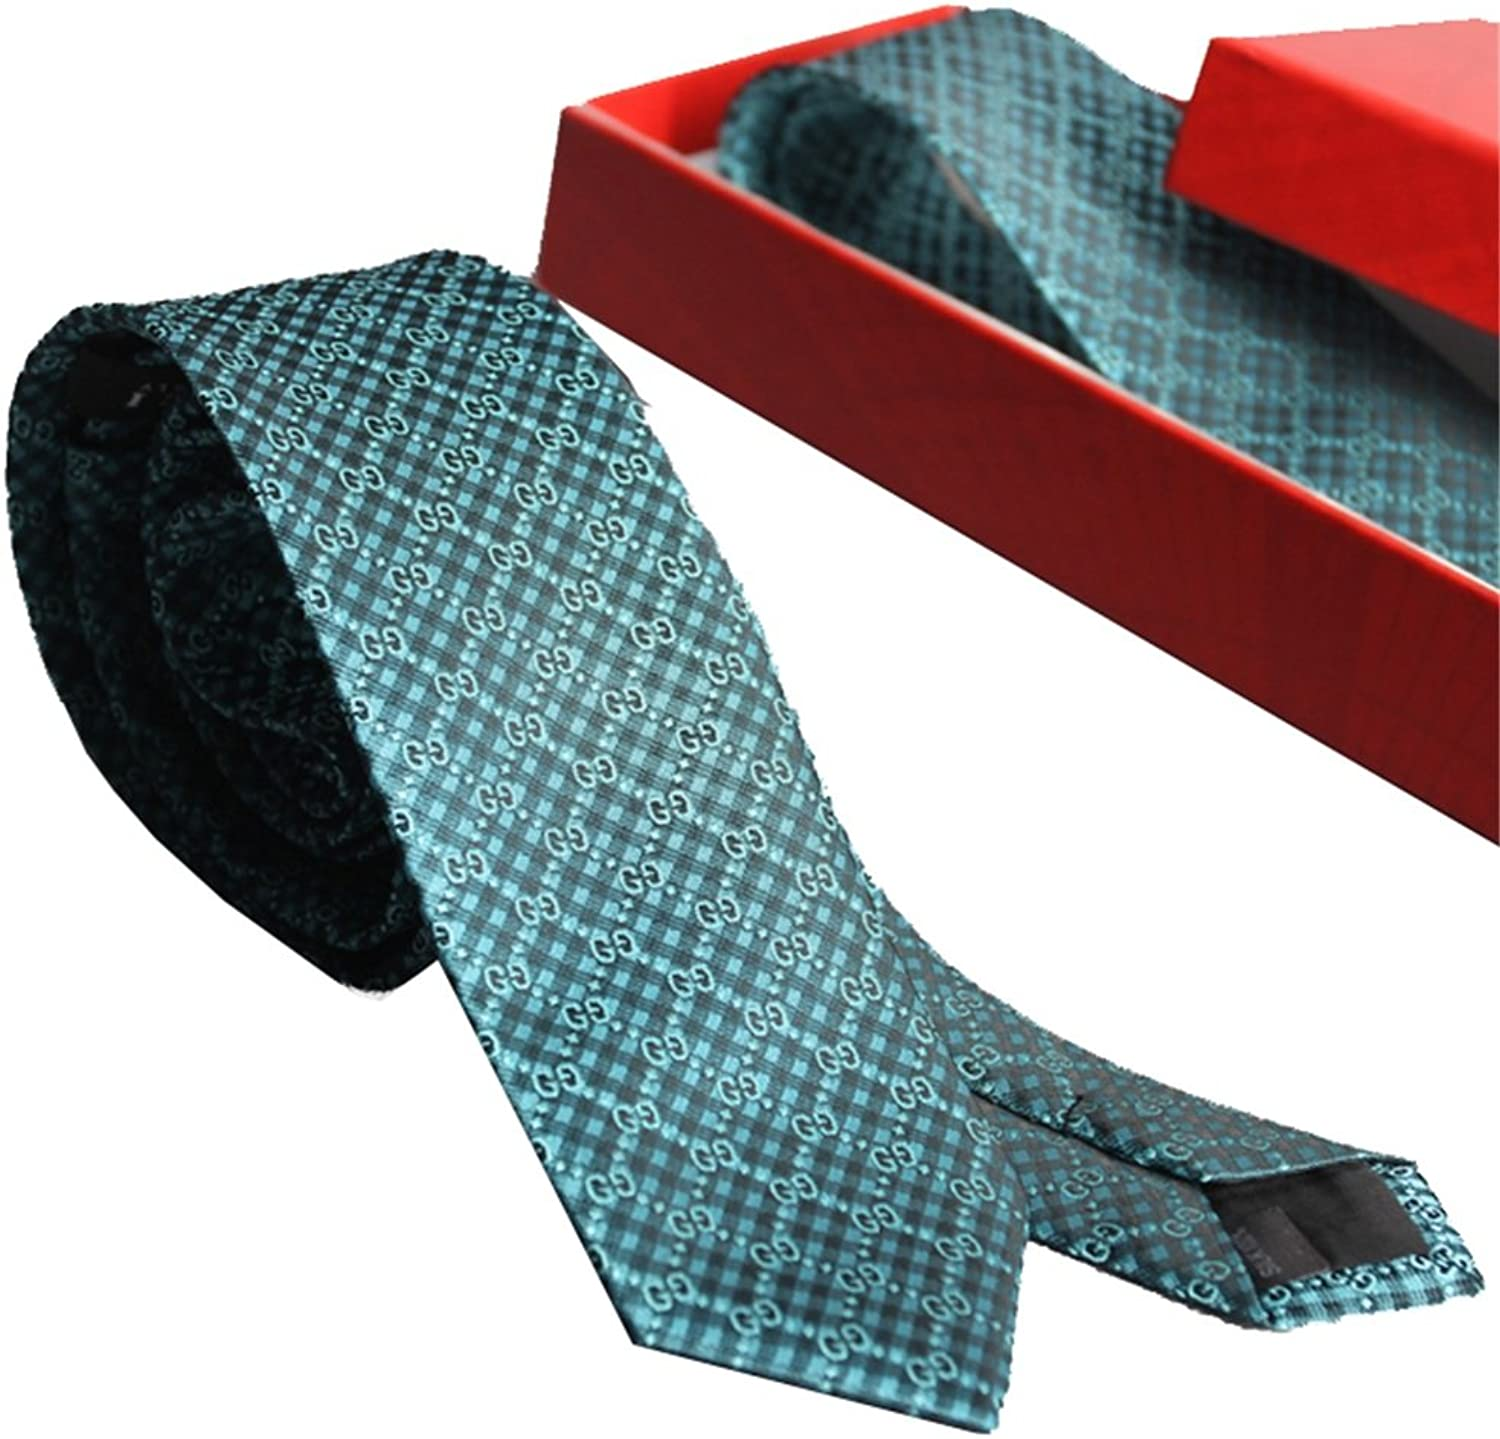 Necktie Men's Tie Plaid with Classic Abstract Alphabet Design Yarn with Retro Craft Jacquard Gift Box Tie